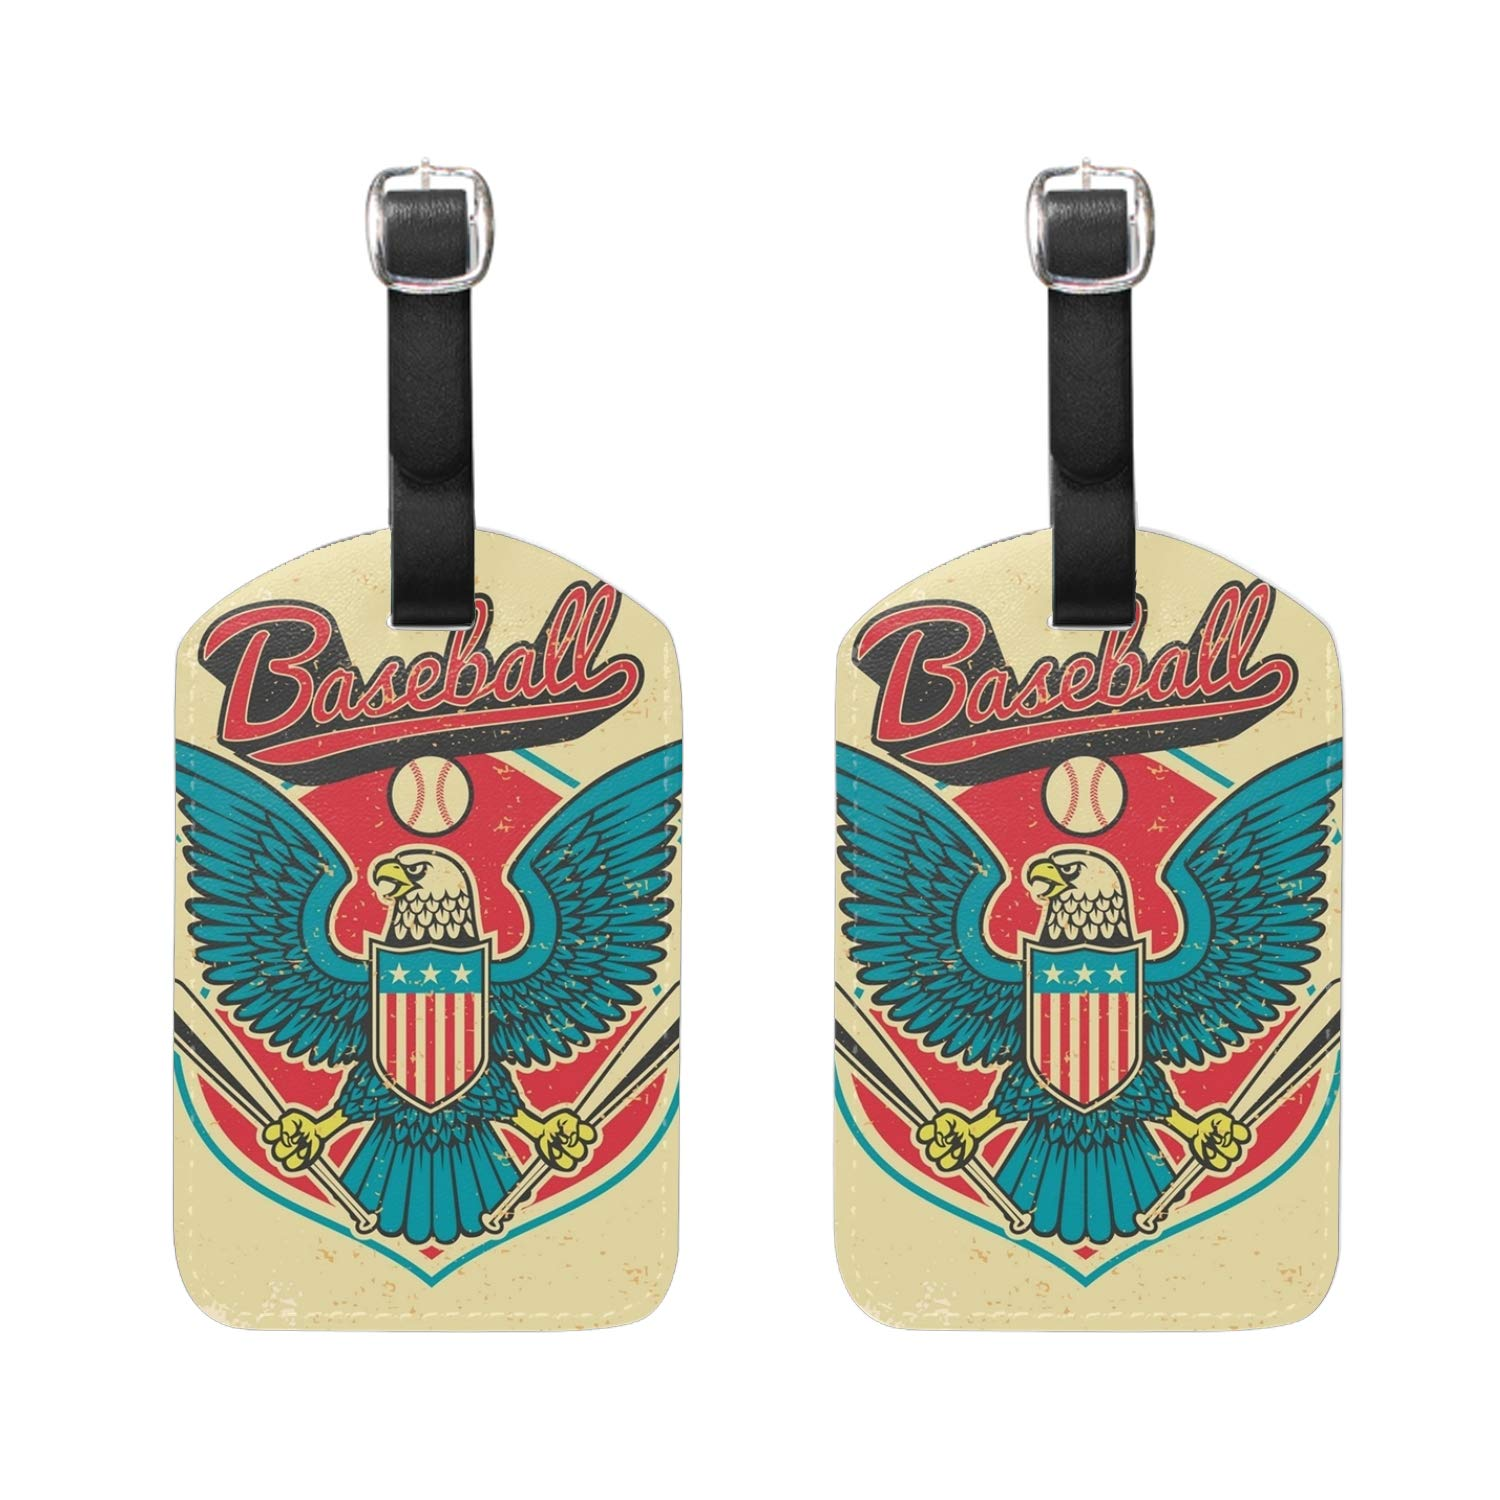 Baseball Eagle Print Luggage Identifiers with Strap Closure